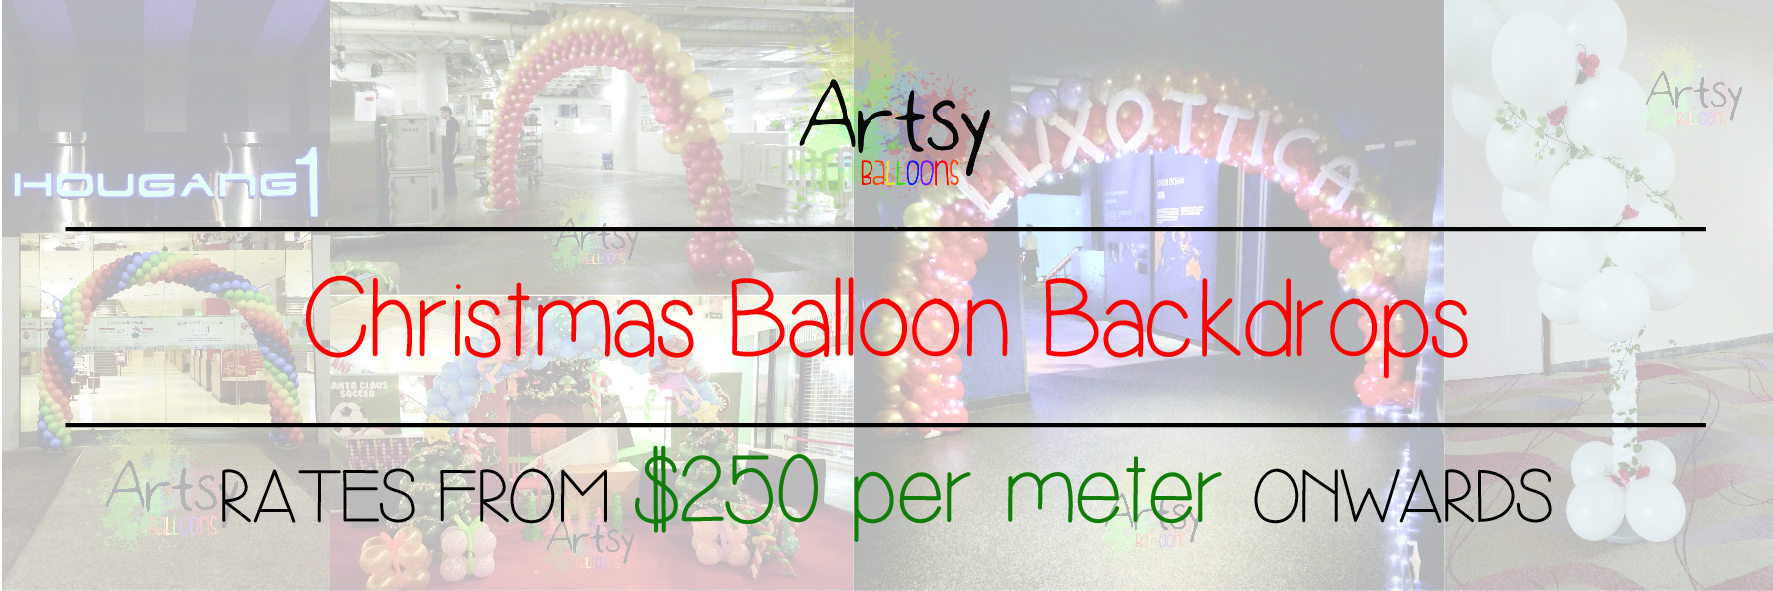 Christmas balloon backdrop banner singapore